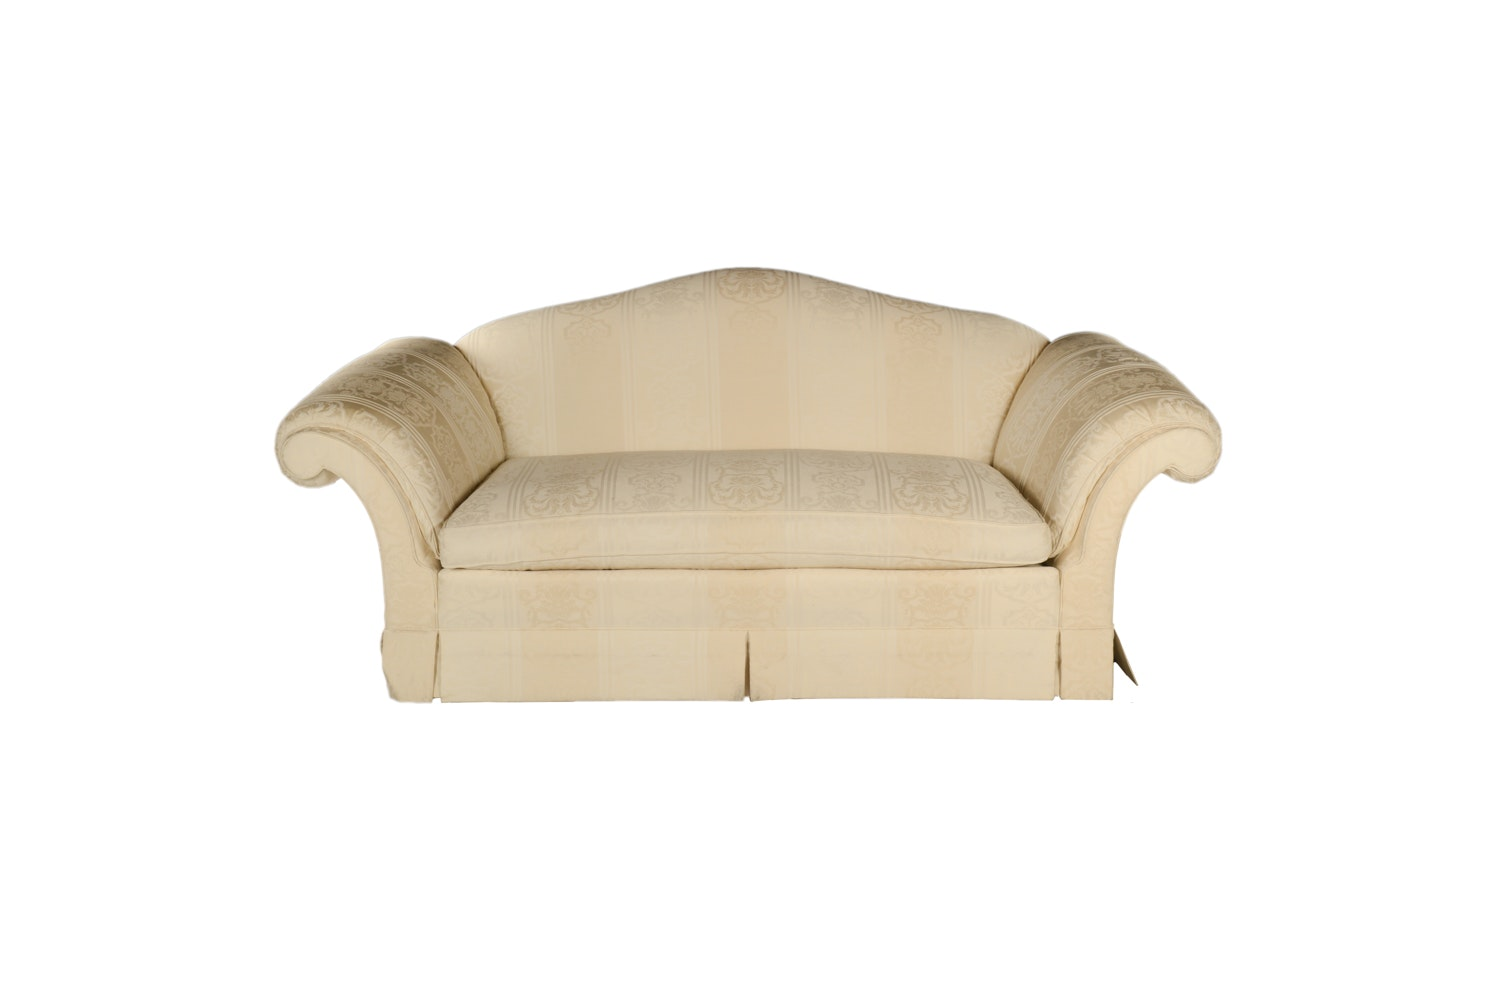 Upholstered Sofa by Southwood, 20th Century